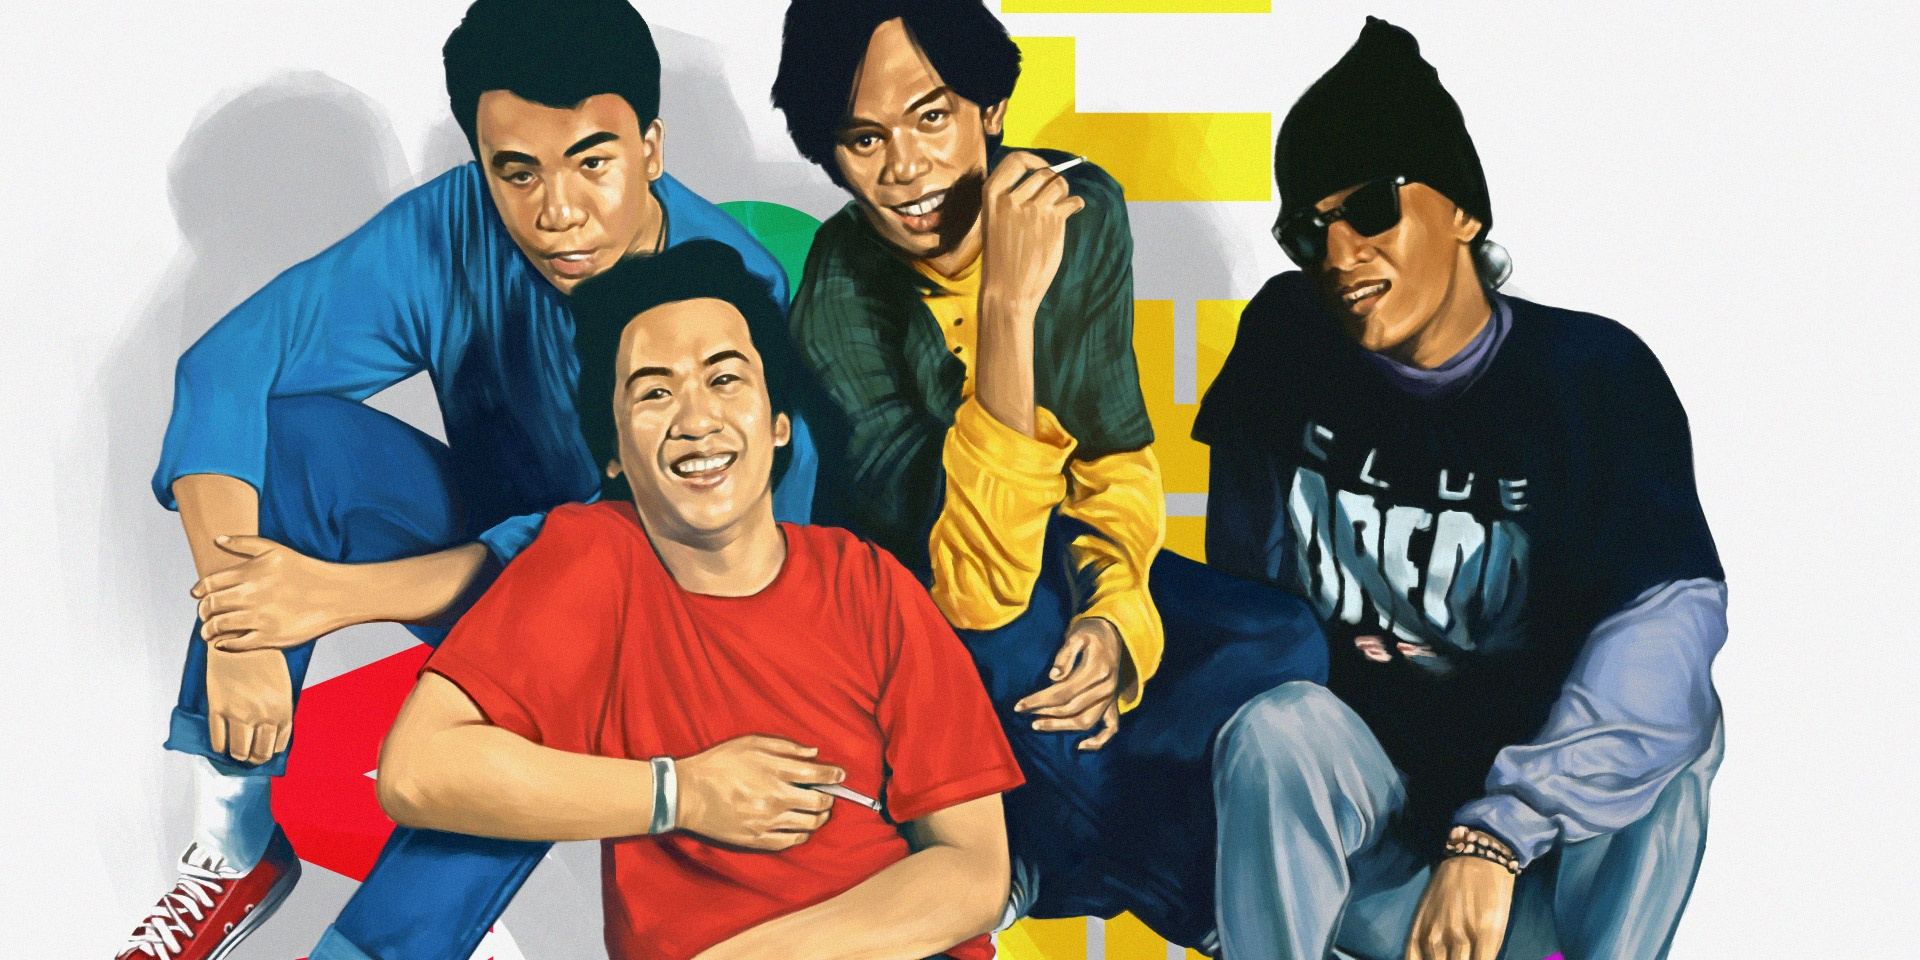 Eraserheads release remastered Ultraelectromagneticpop! album in celebration of 25th anniversary – listen